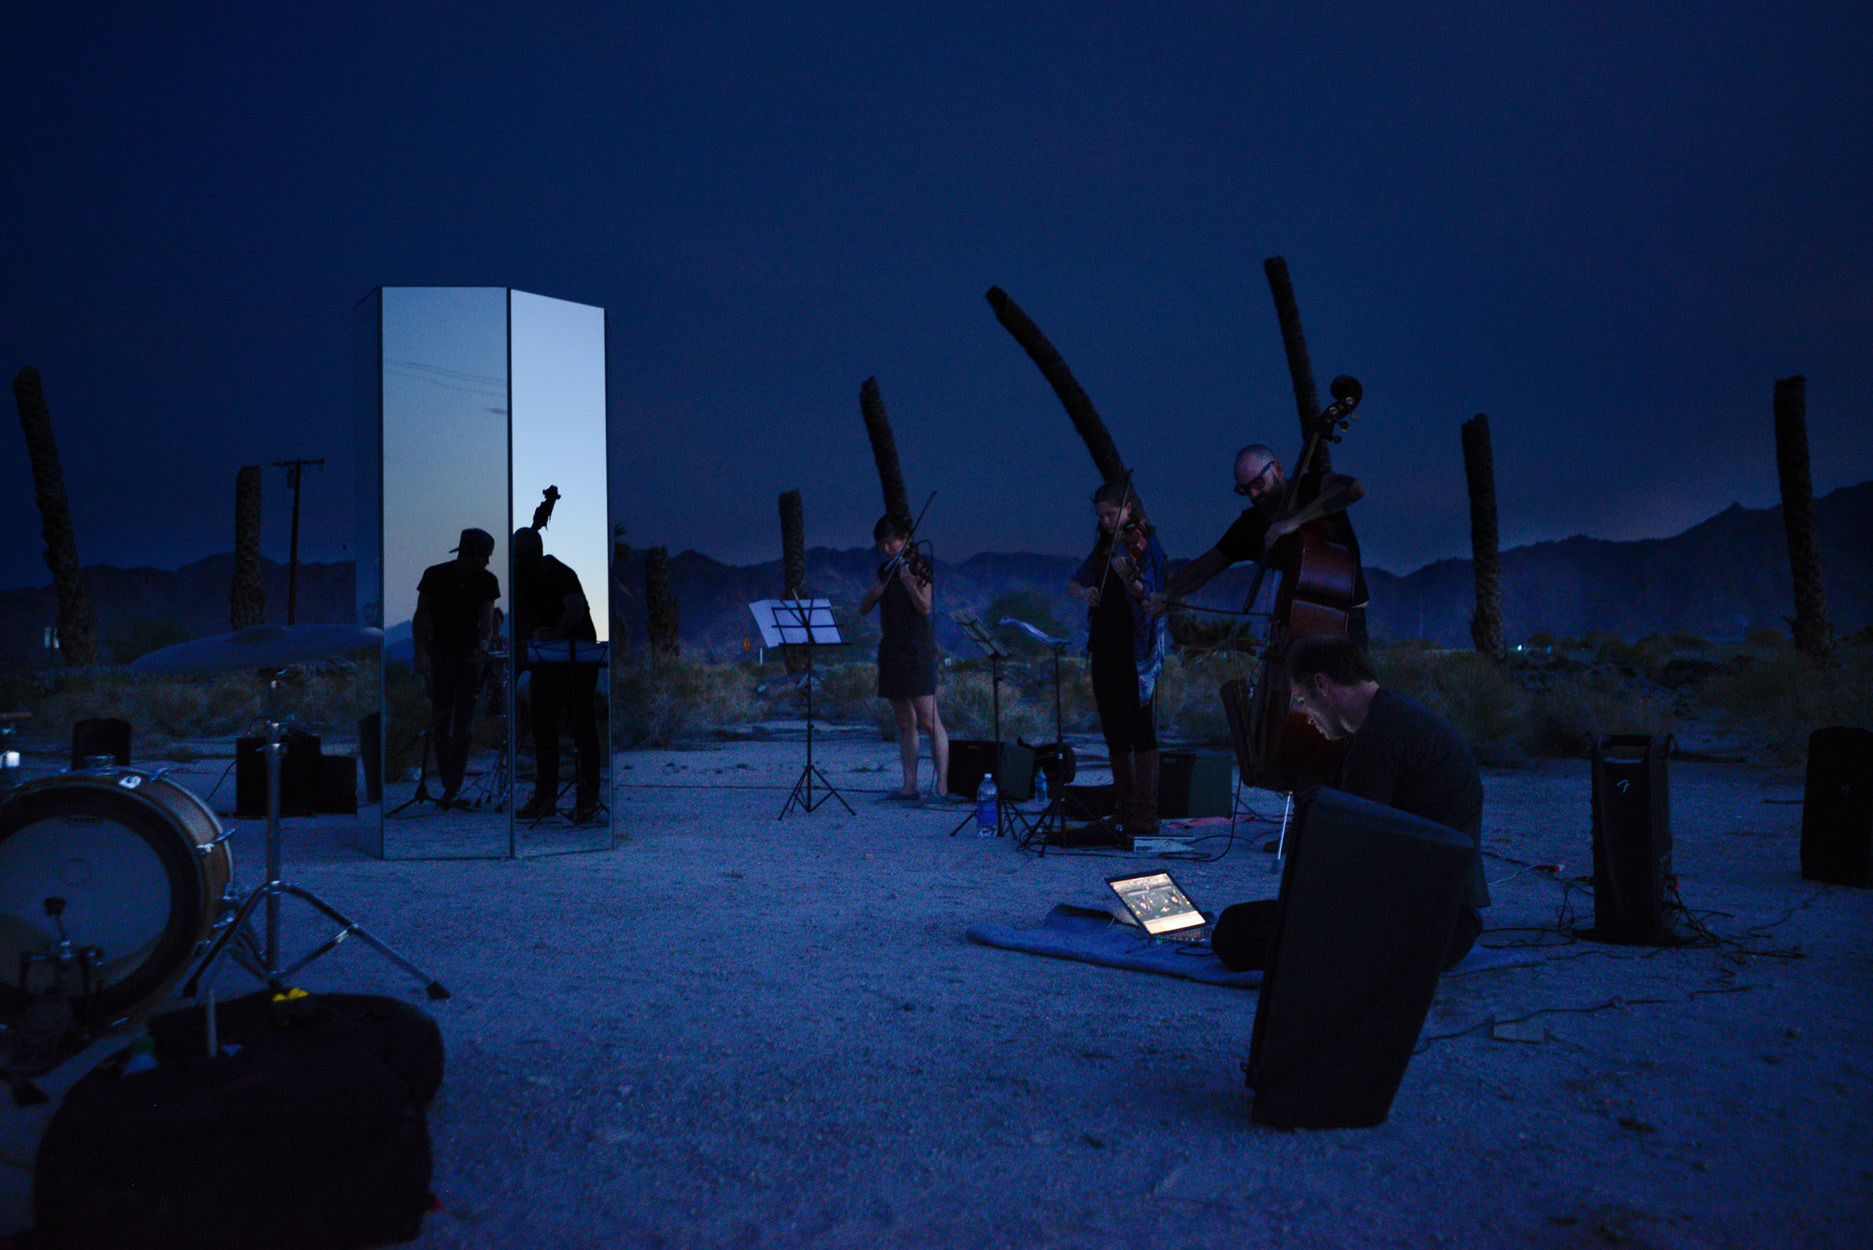 Scott Benzel, <i>Desert Center (Composition I-10, Mvmt IV: Dusk)</i>, Desert Center, CA, 2015. Image courtesy of Zoe Crosher.